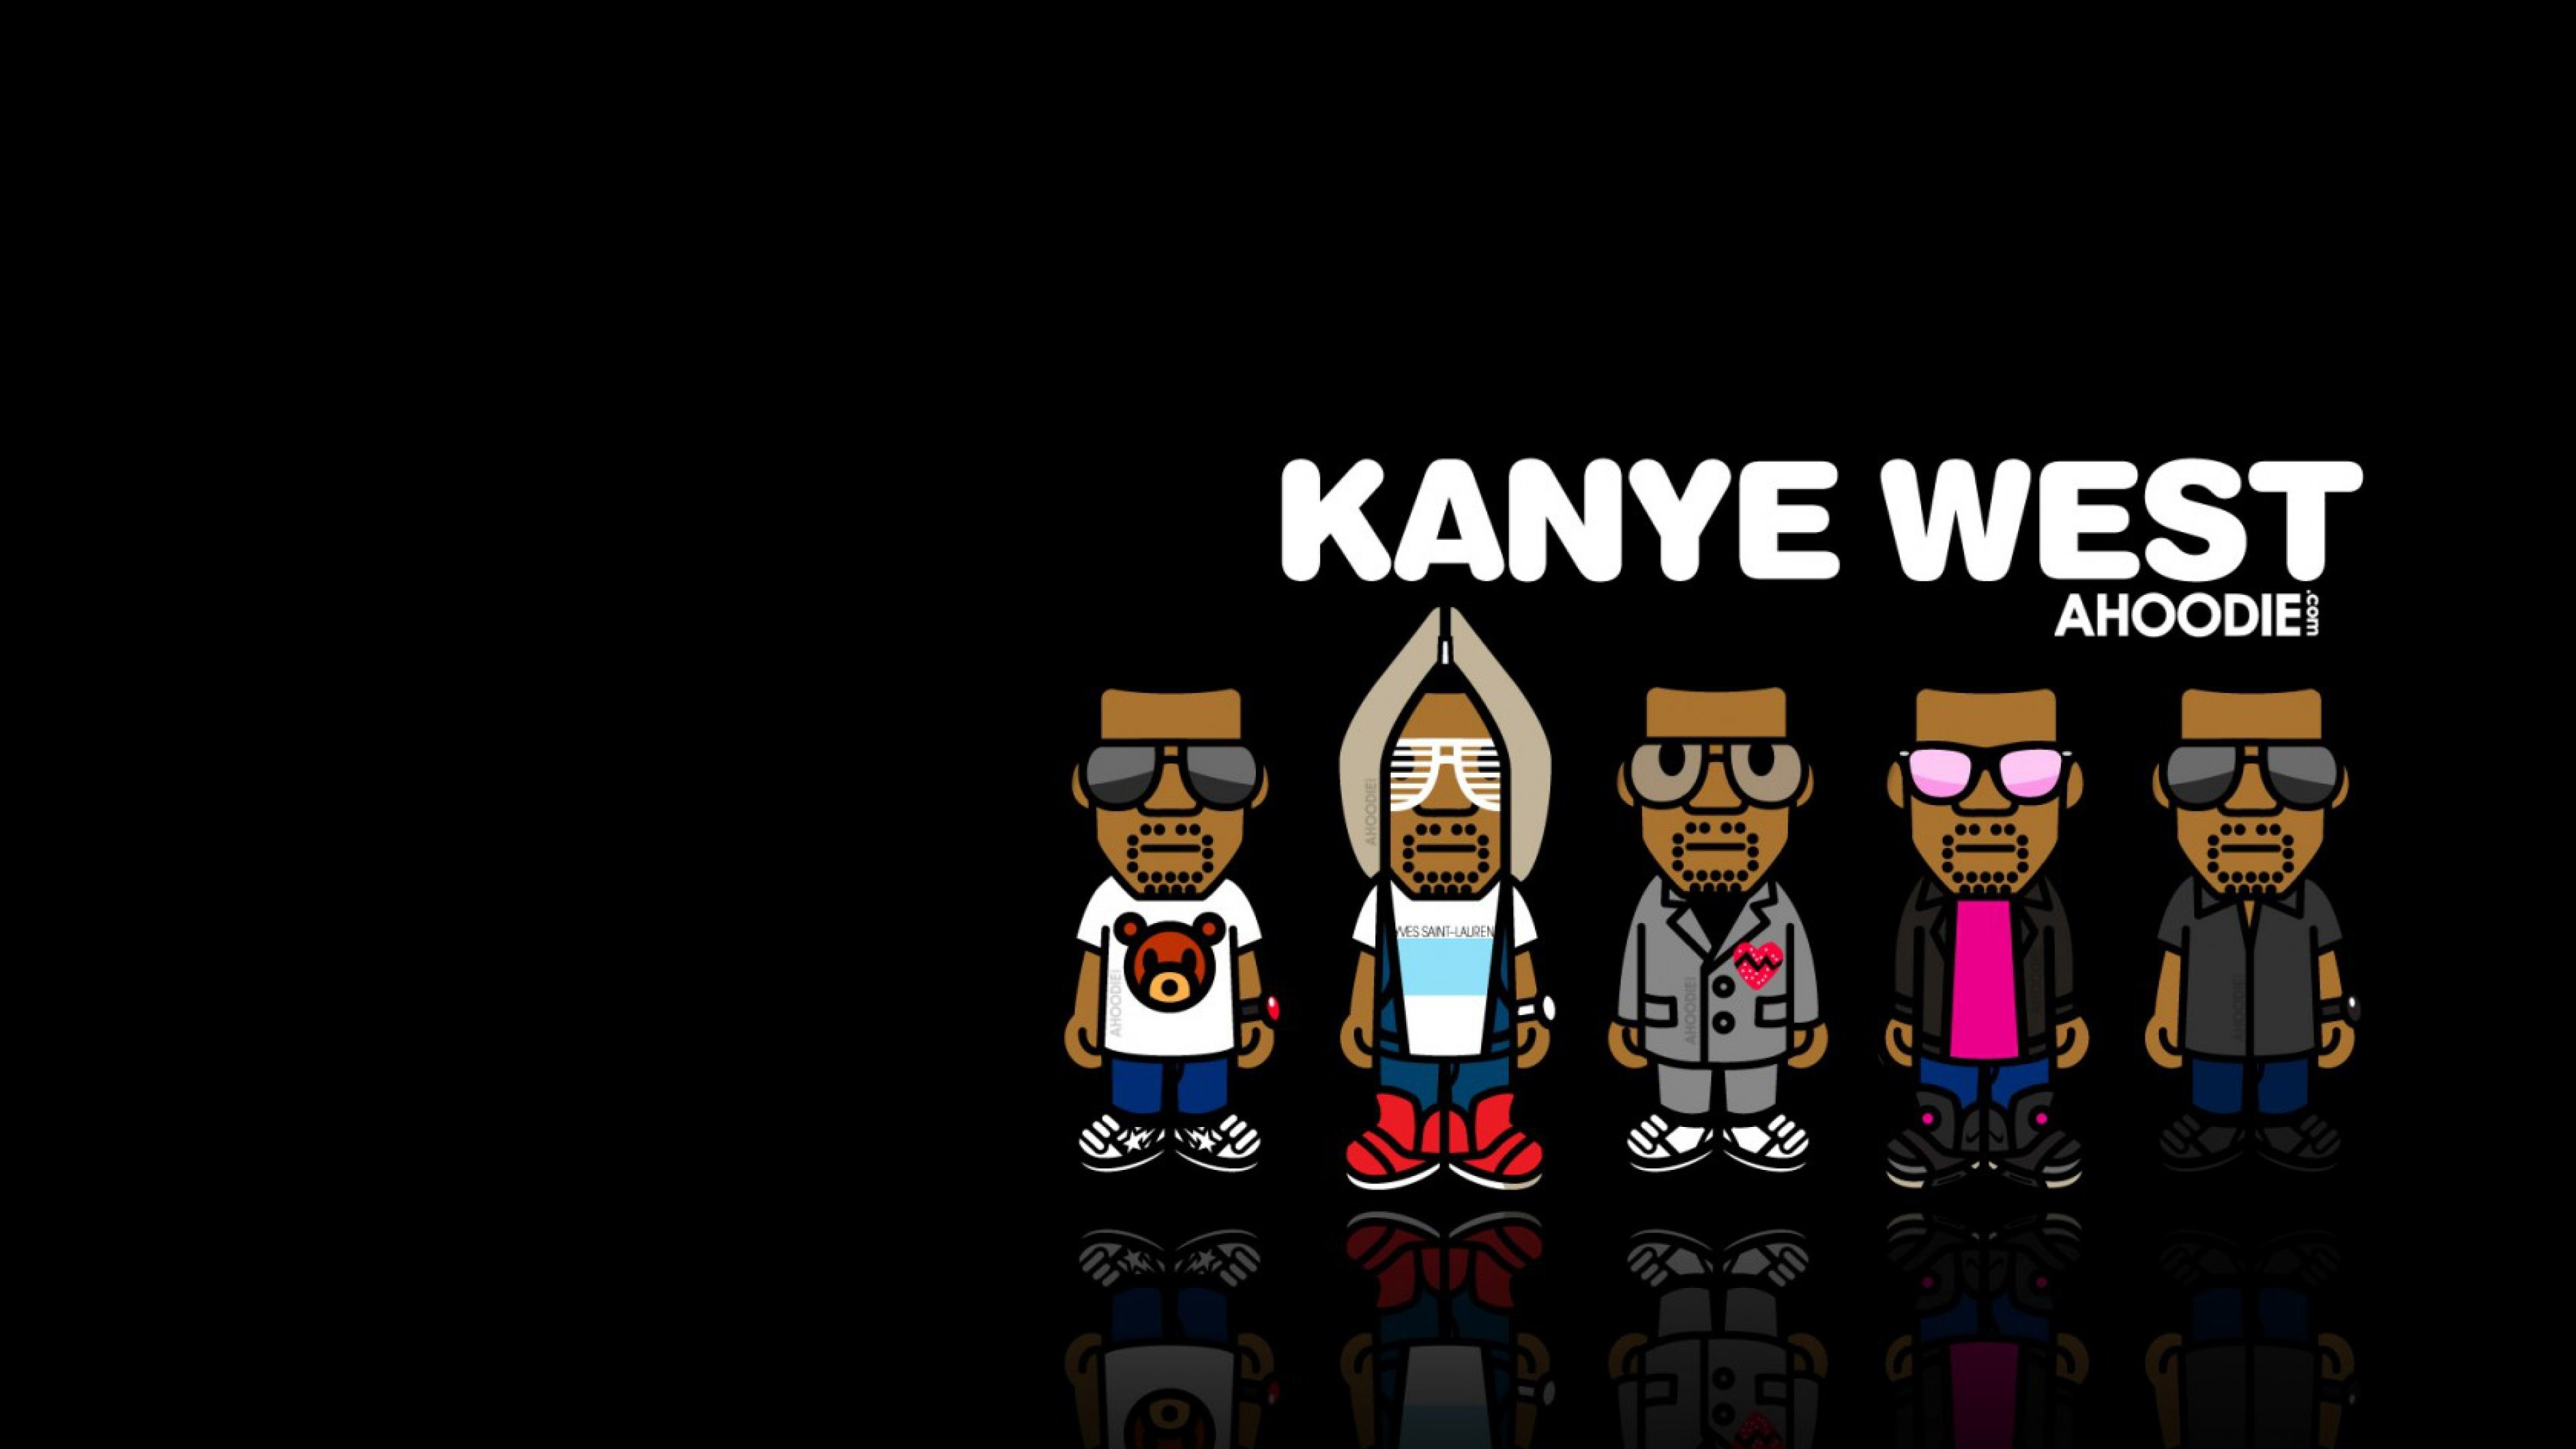 3840x2160 Download Wallpaper  Kanye west, Music, Image, Hip-hop 4K .